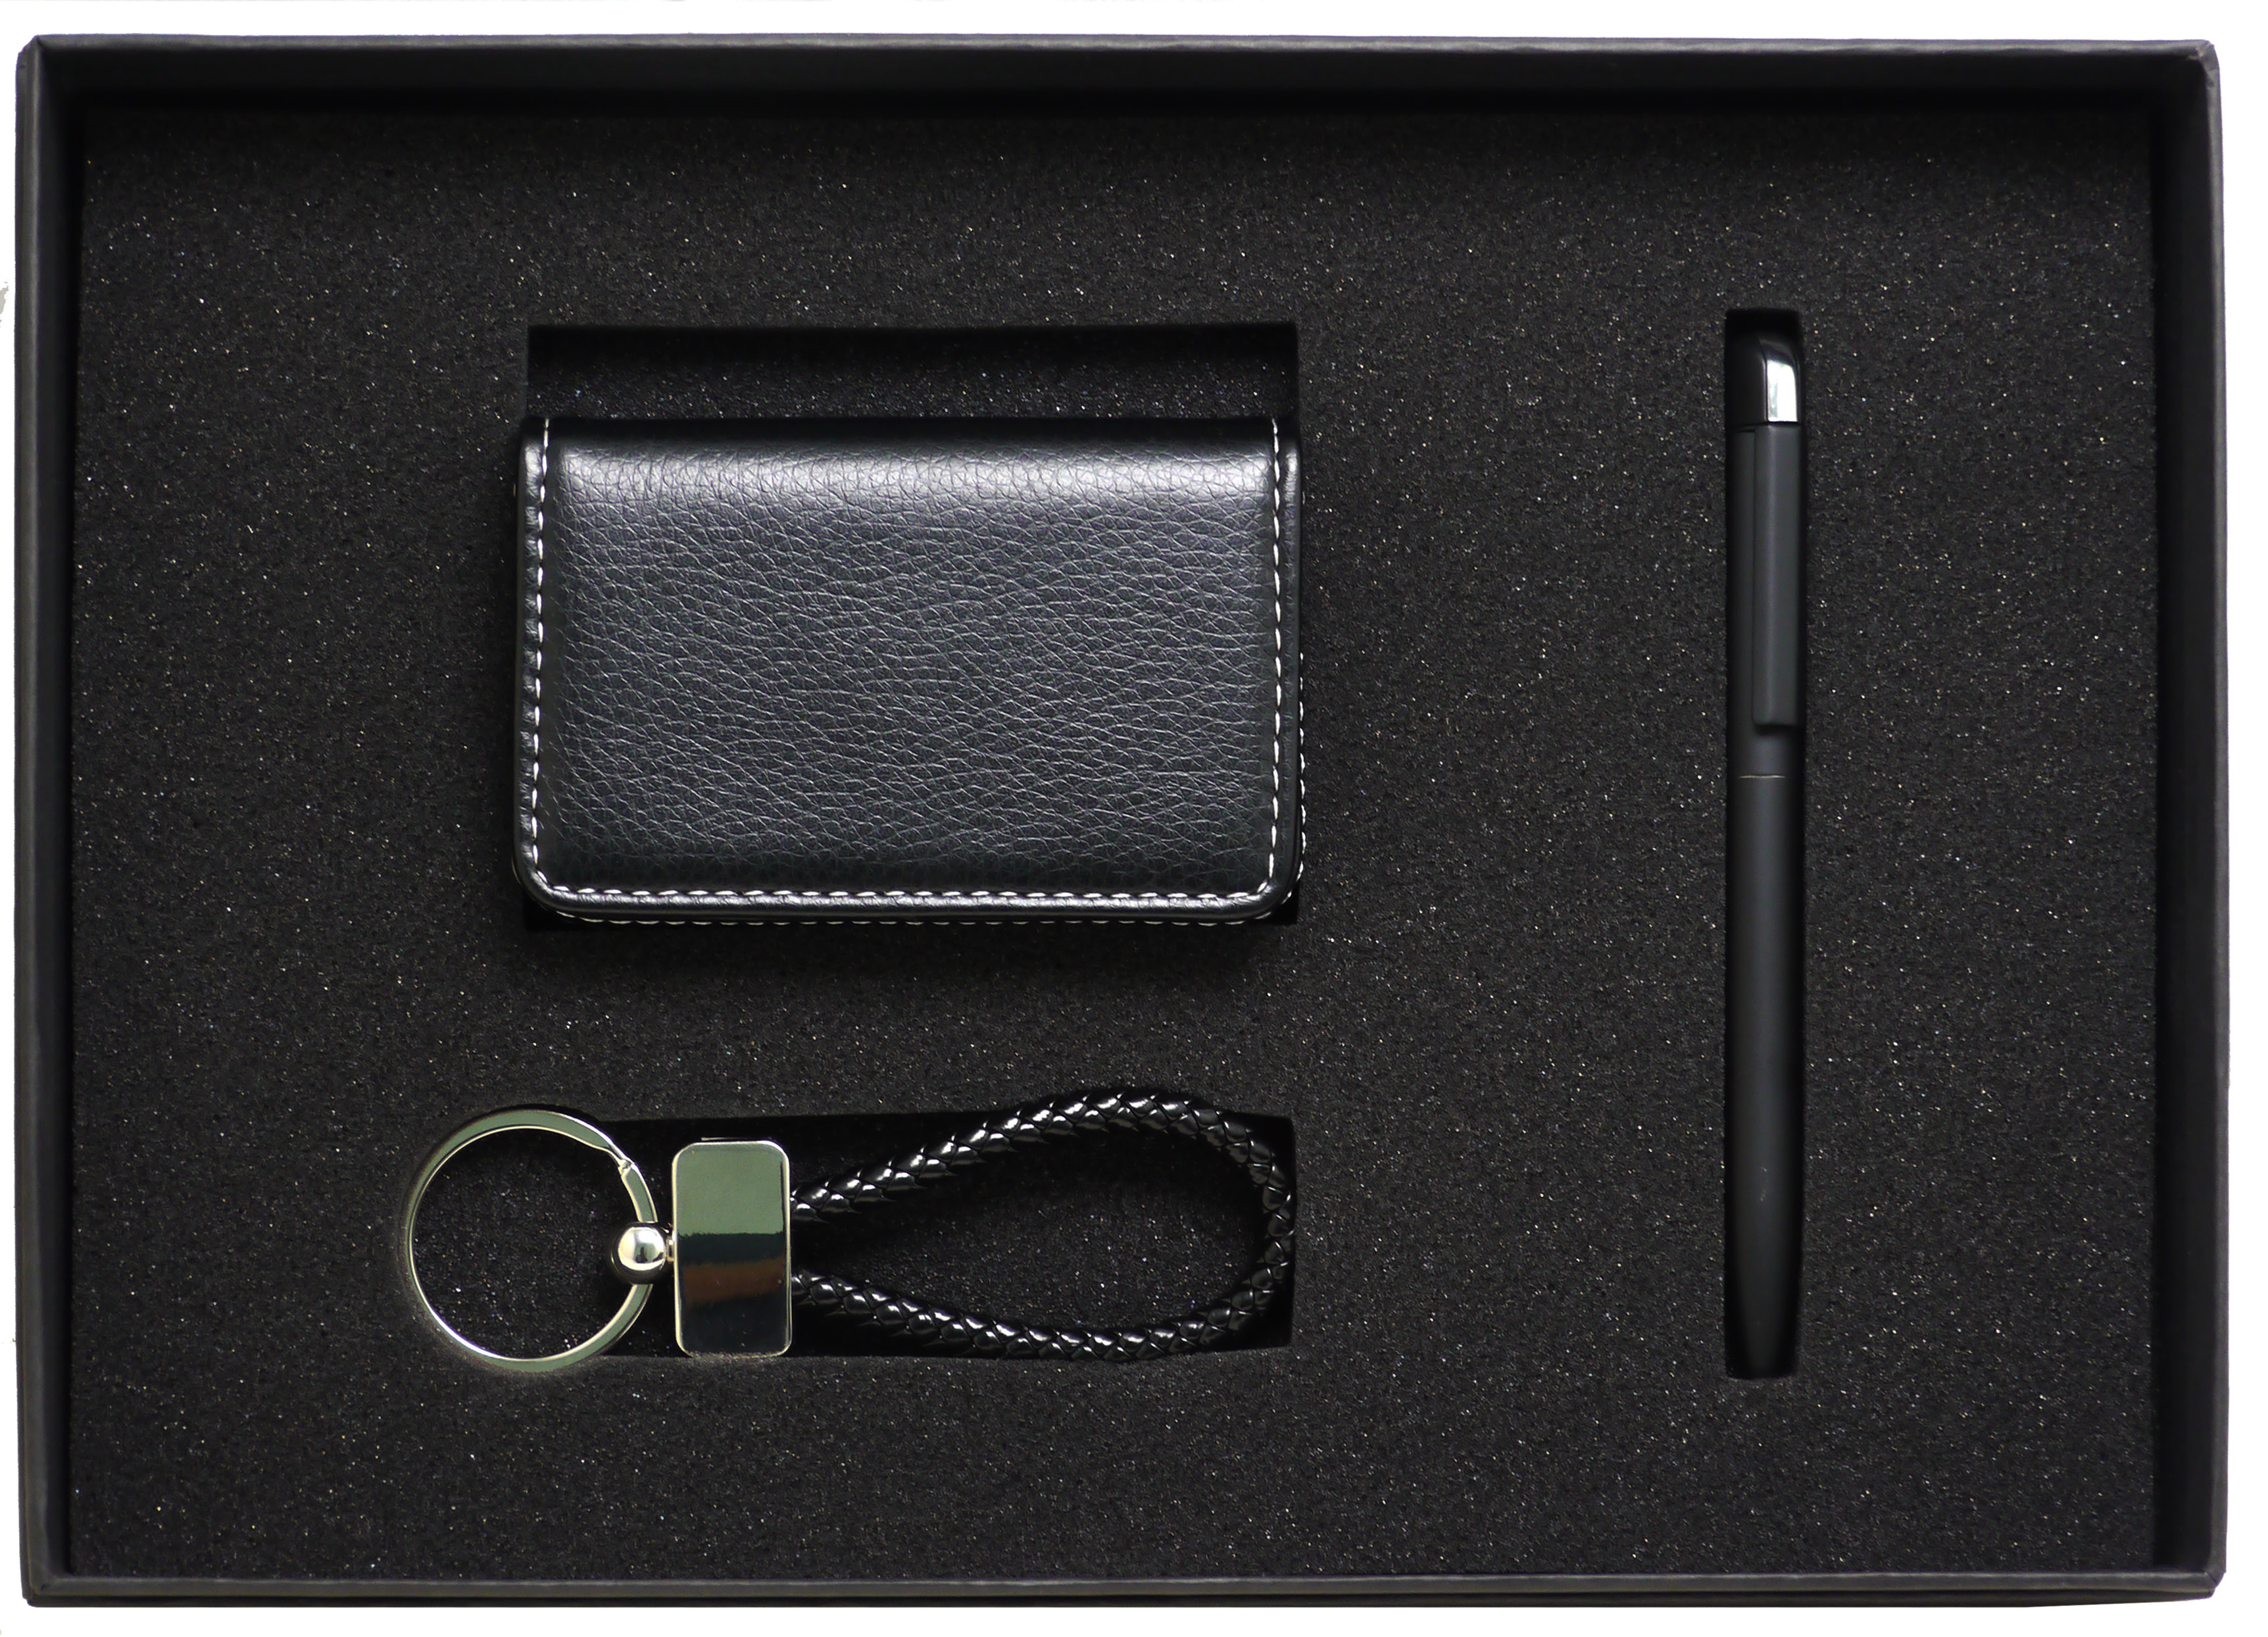 Newt Image Black Leather Keyring in Gift Box